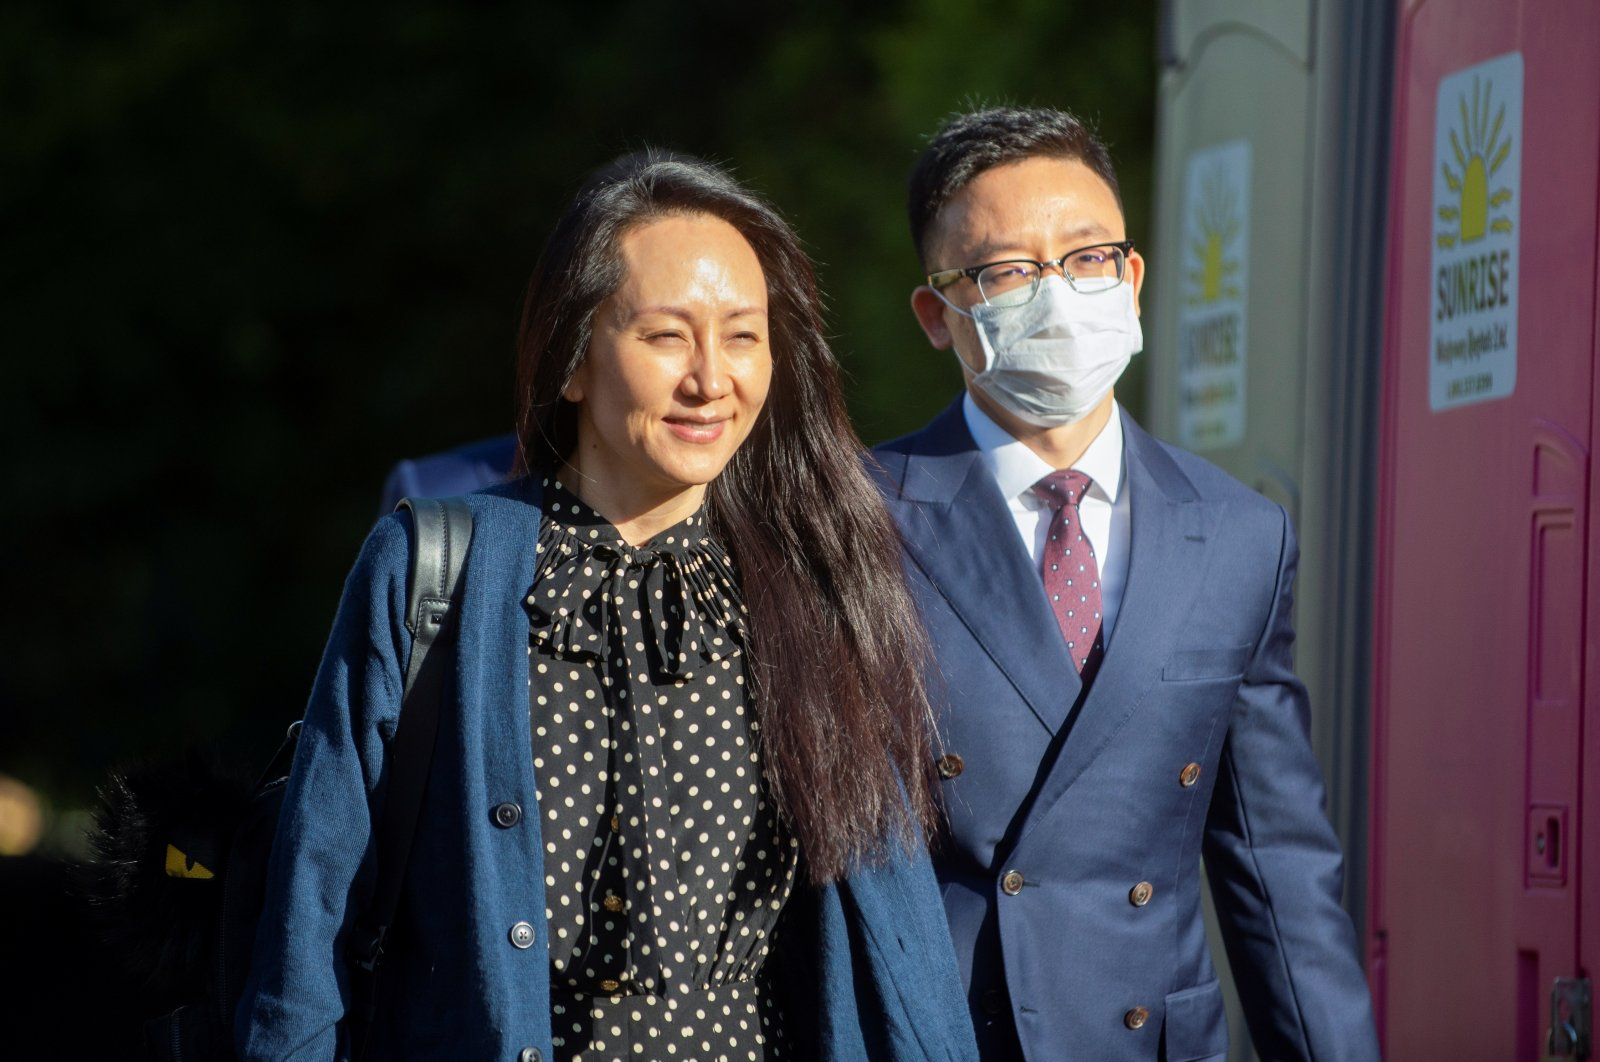 Huawei Technologies Chief Financial Officer Meng Wanzhou (L) leaves her home to attend a court hearing in Vancouver, British Columbia, Canada Sept. 24, 2021. (Reuters Photo)